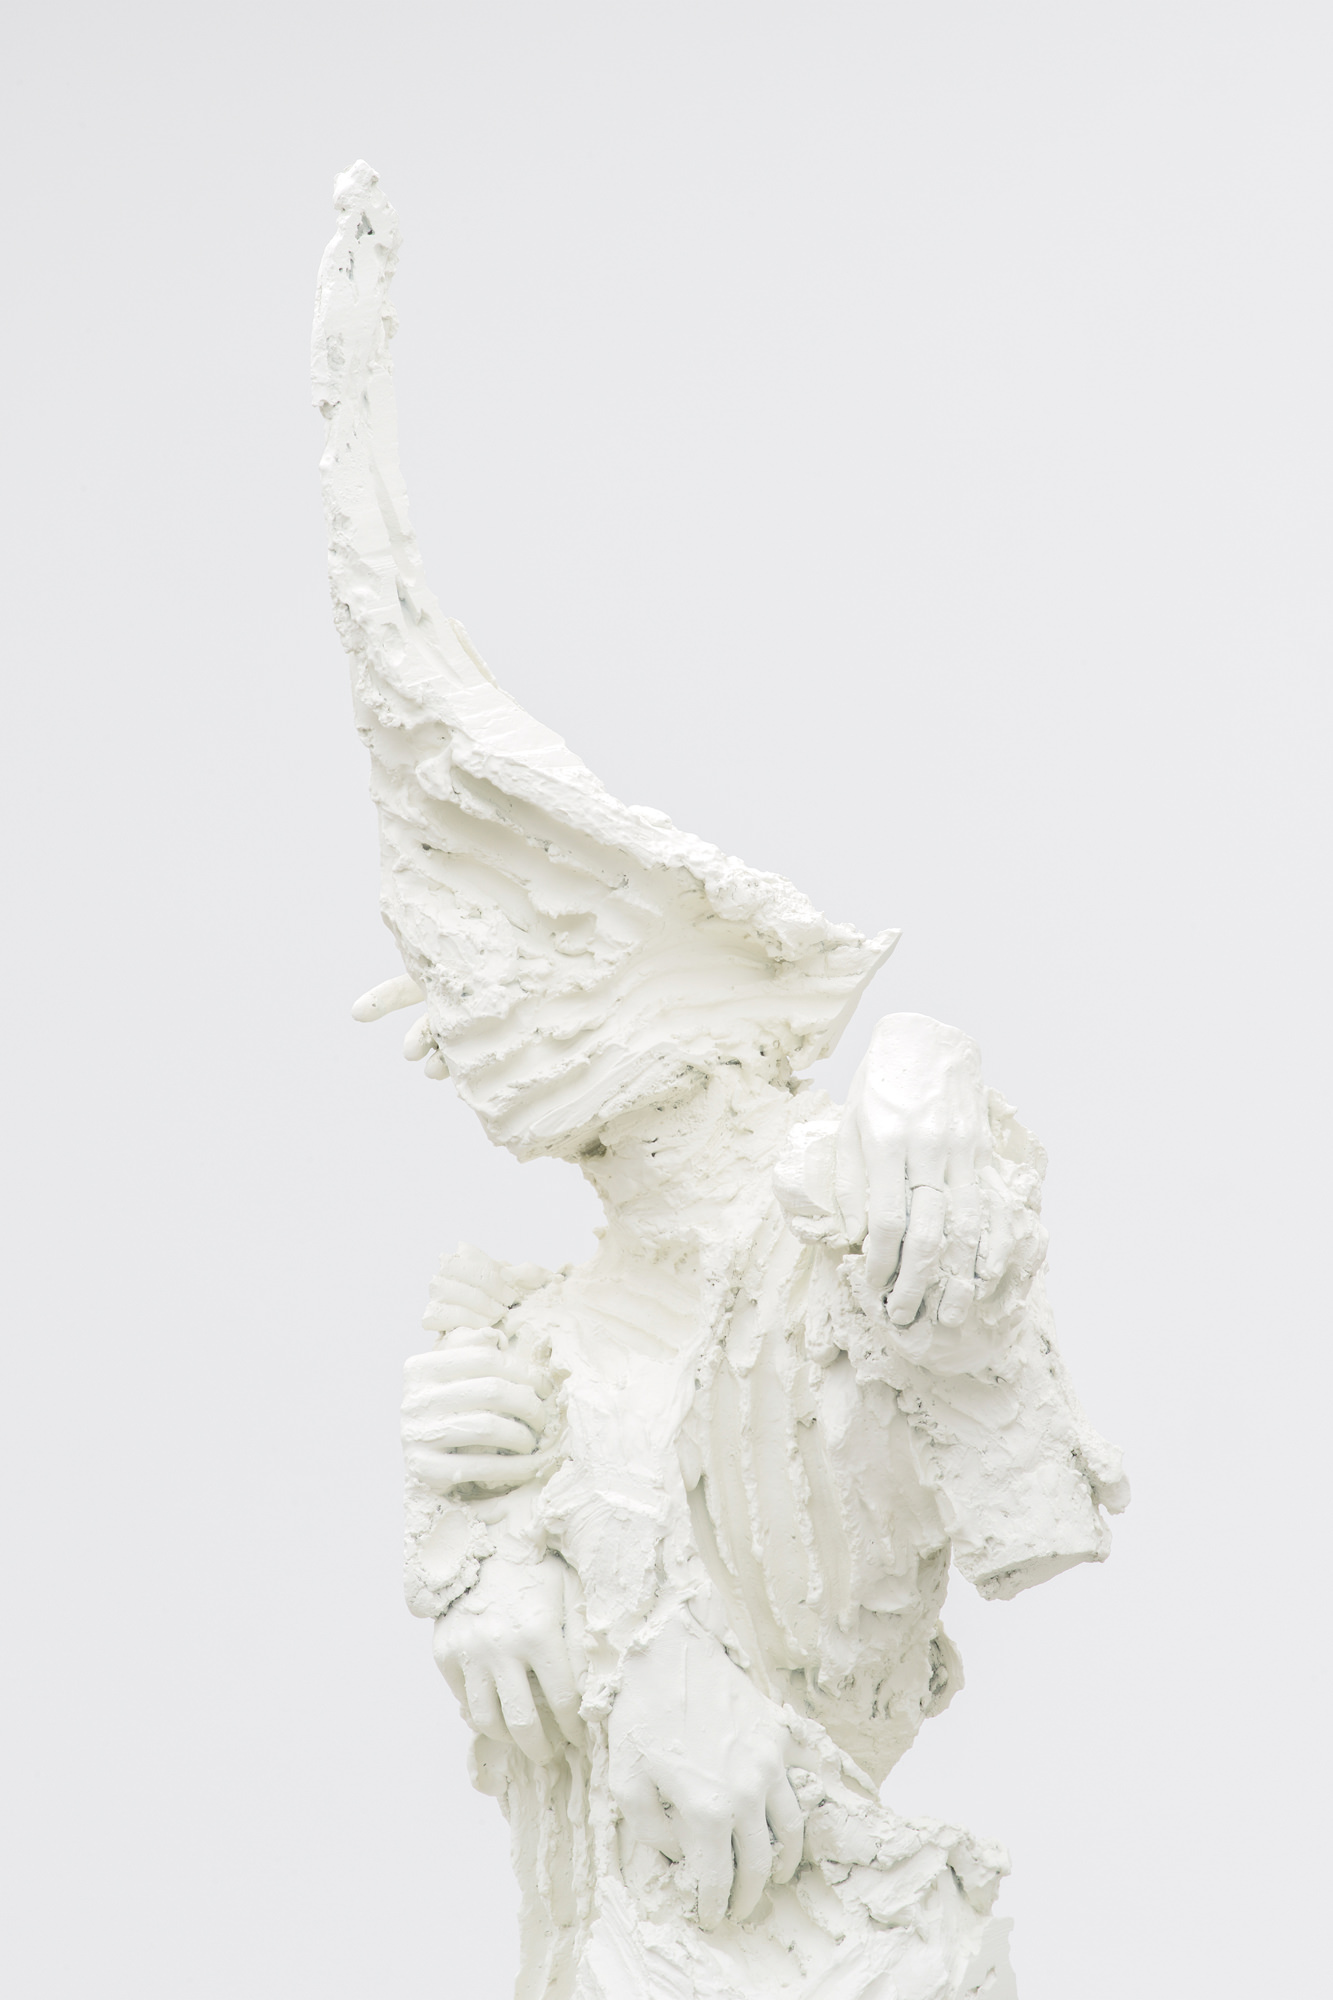 La Licorne (2016) by David Altmejd (detail), bronze, 223 x 97.5 x 80 cm.